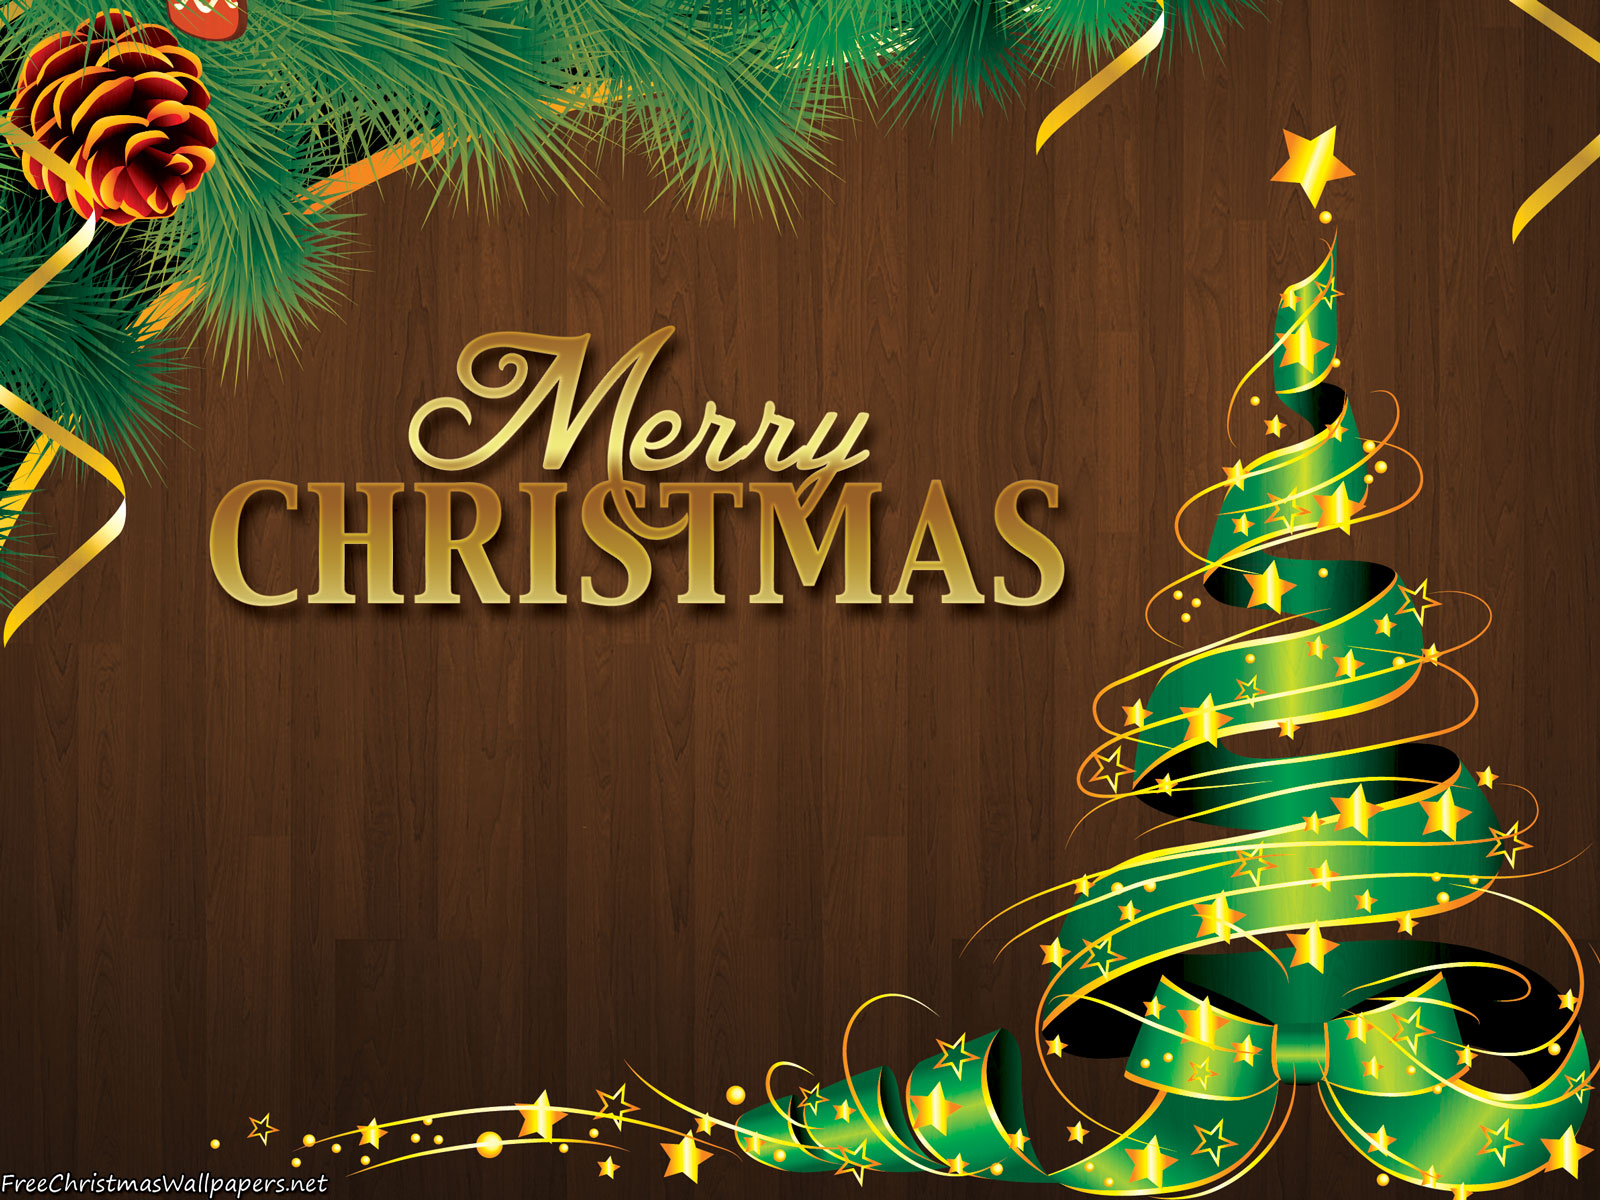 merry christmas wishes messages and new year